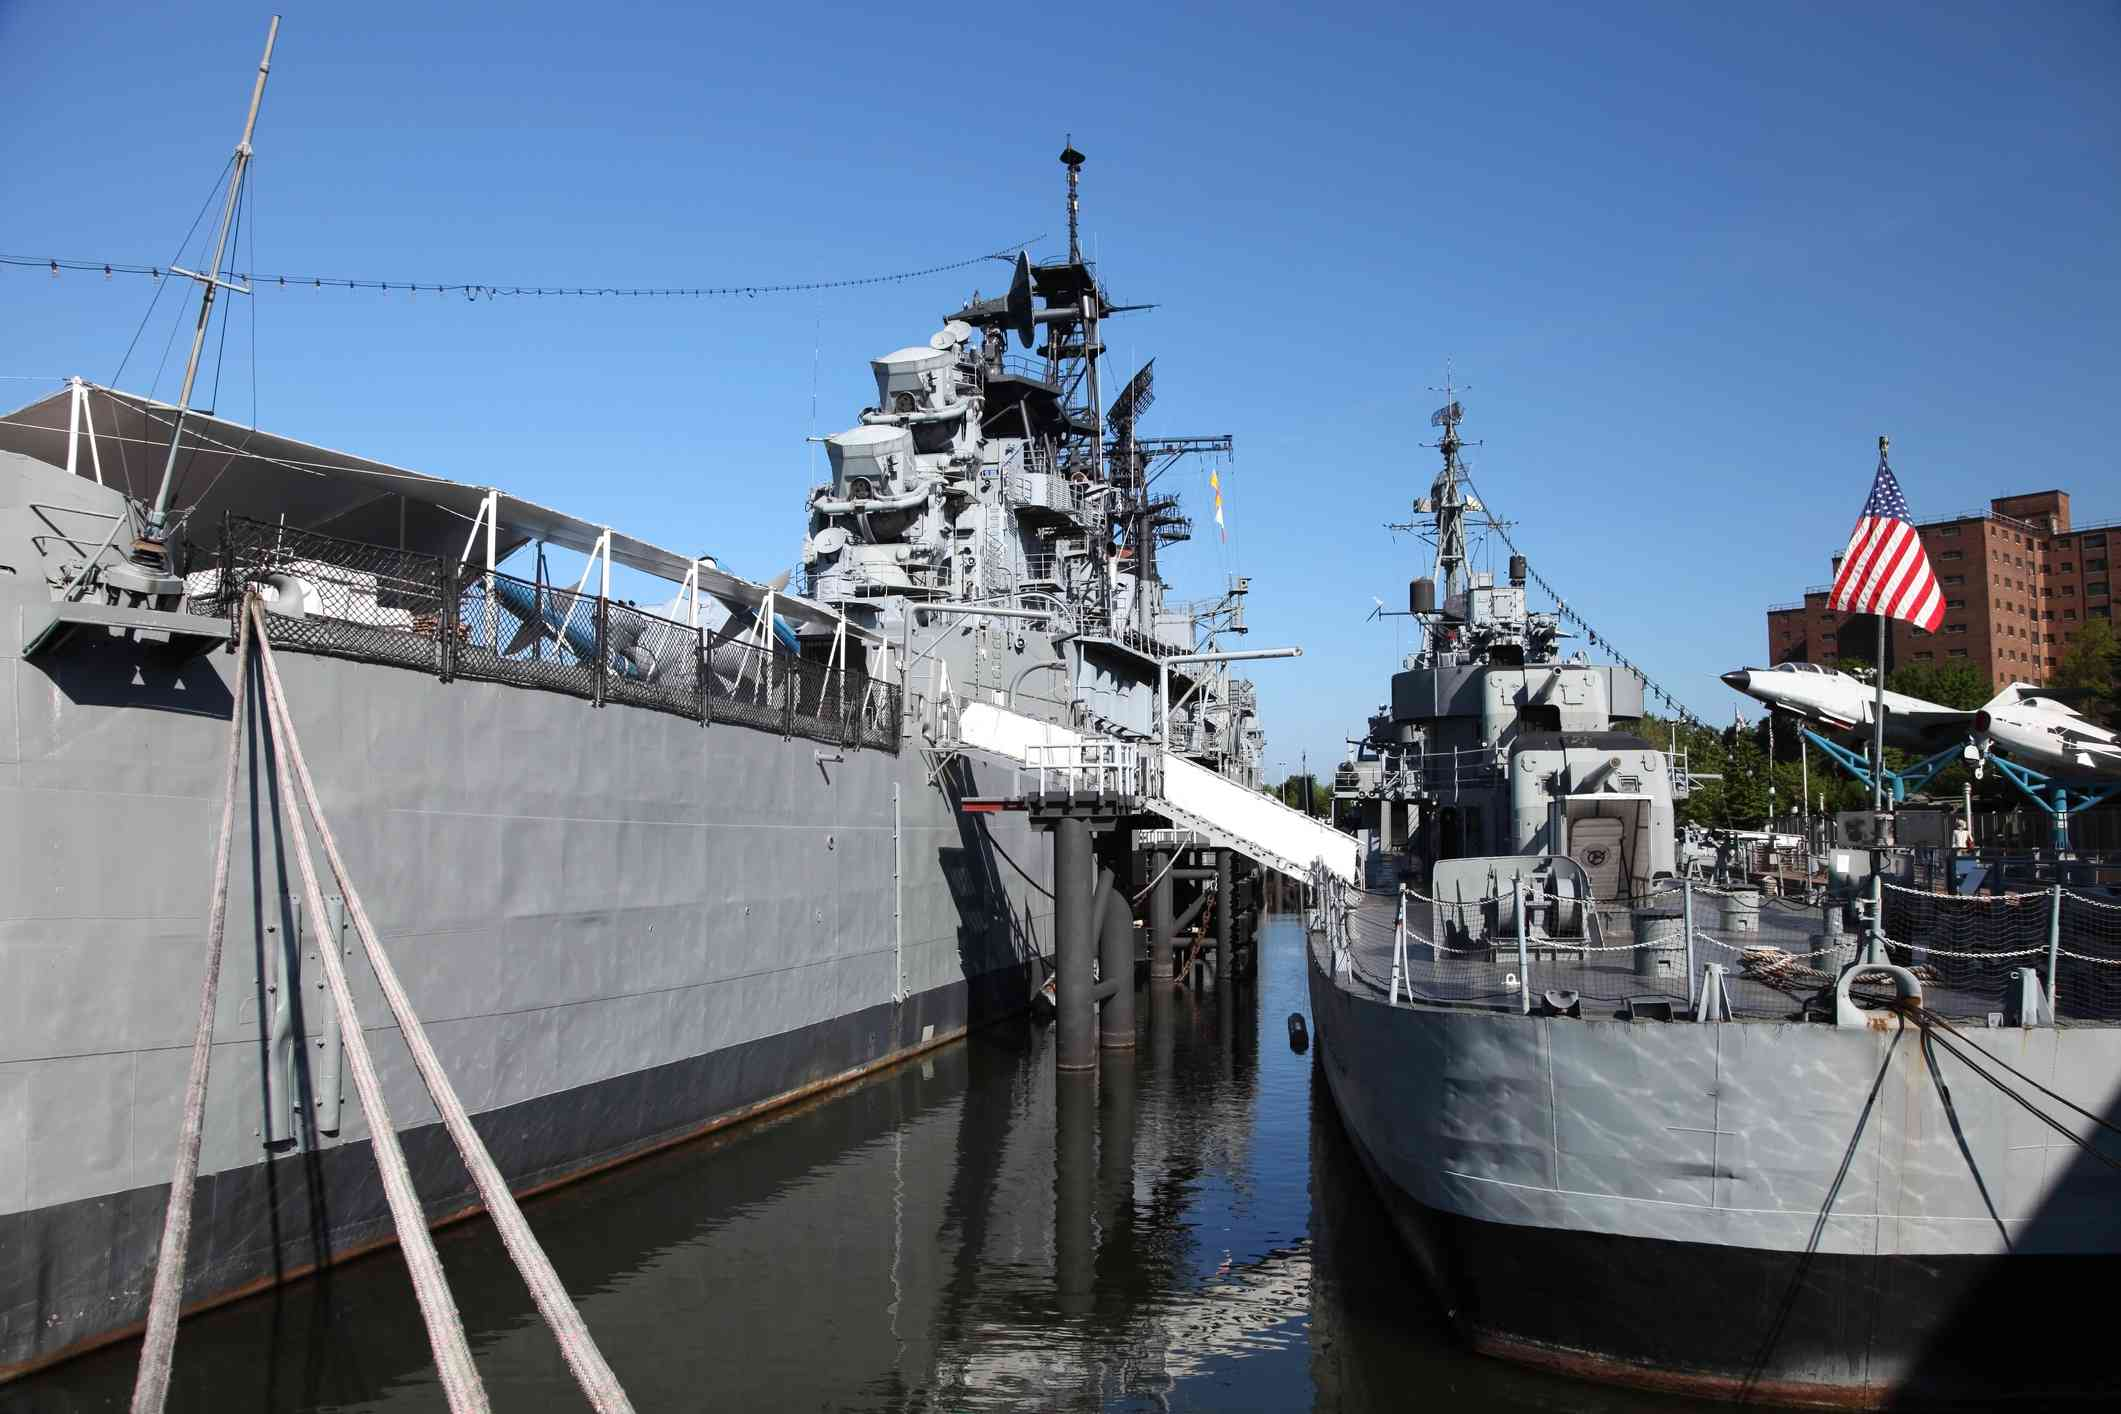 grey naval ship docked near shore with blue sky and US flag